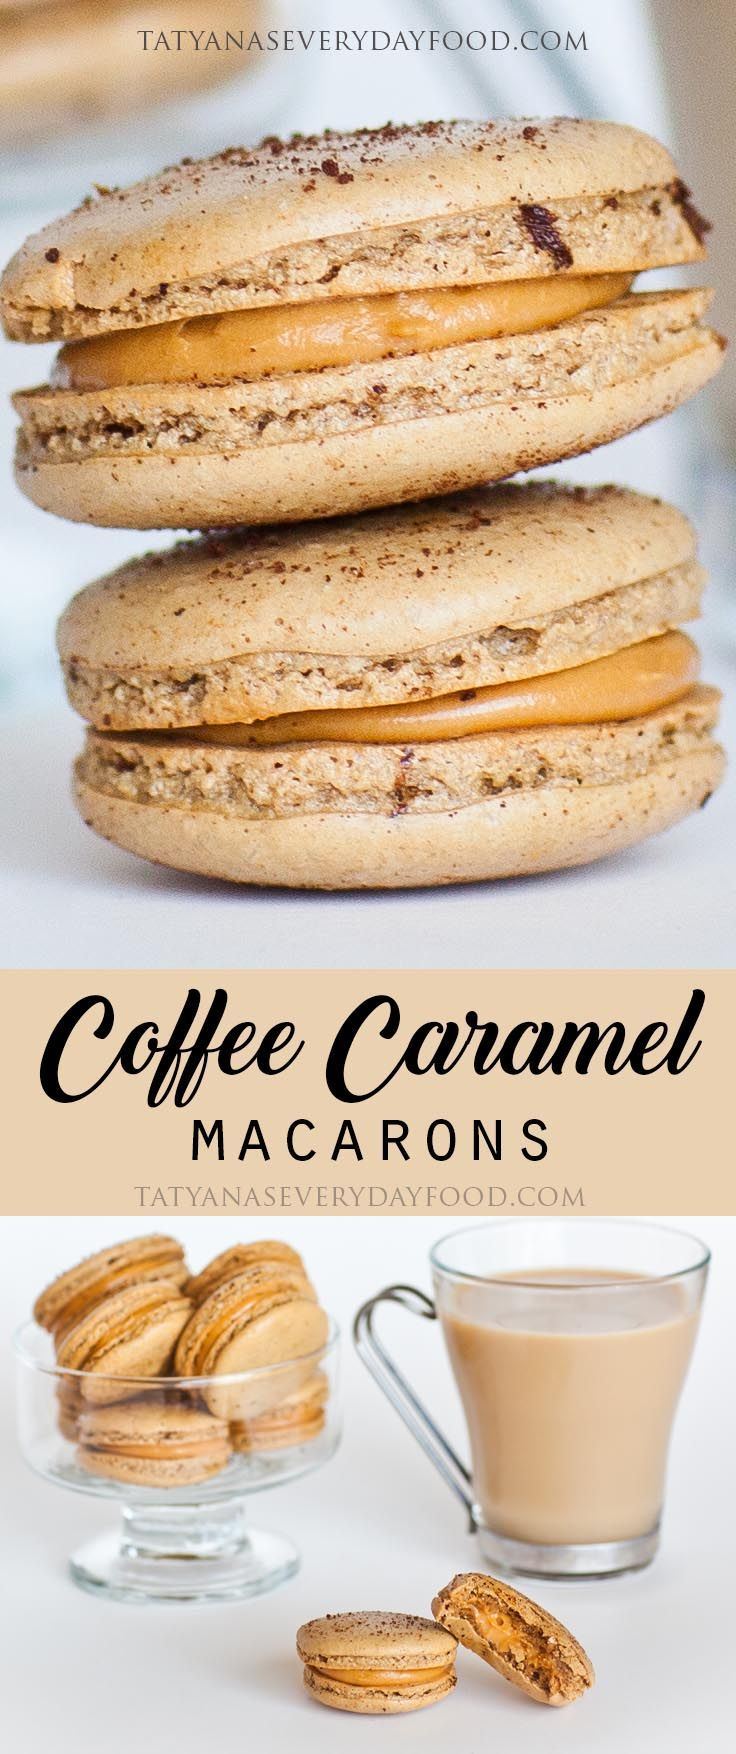 """These coffee macaron cookies are simply heavenly! A delicious combination of coffee and salted dulce de leche frosting! Macarons are easier to make than you think, just watch my step-by-step video! Click below on the """"HOW-TO"""" tab to see my video recipe.:"""